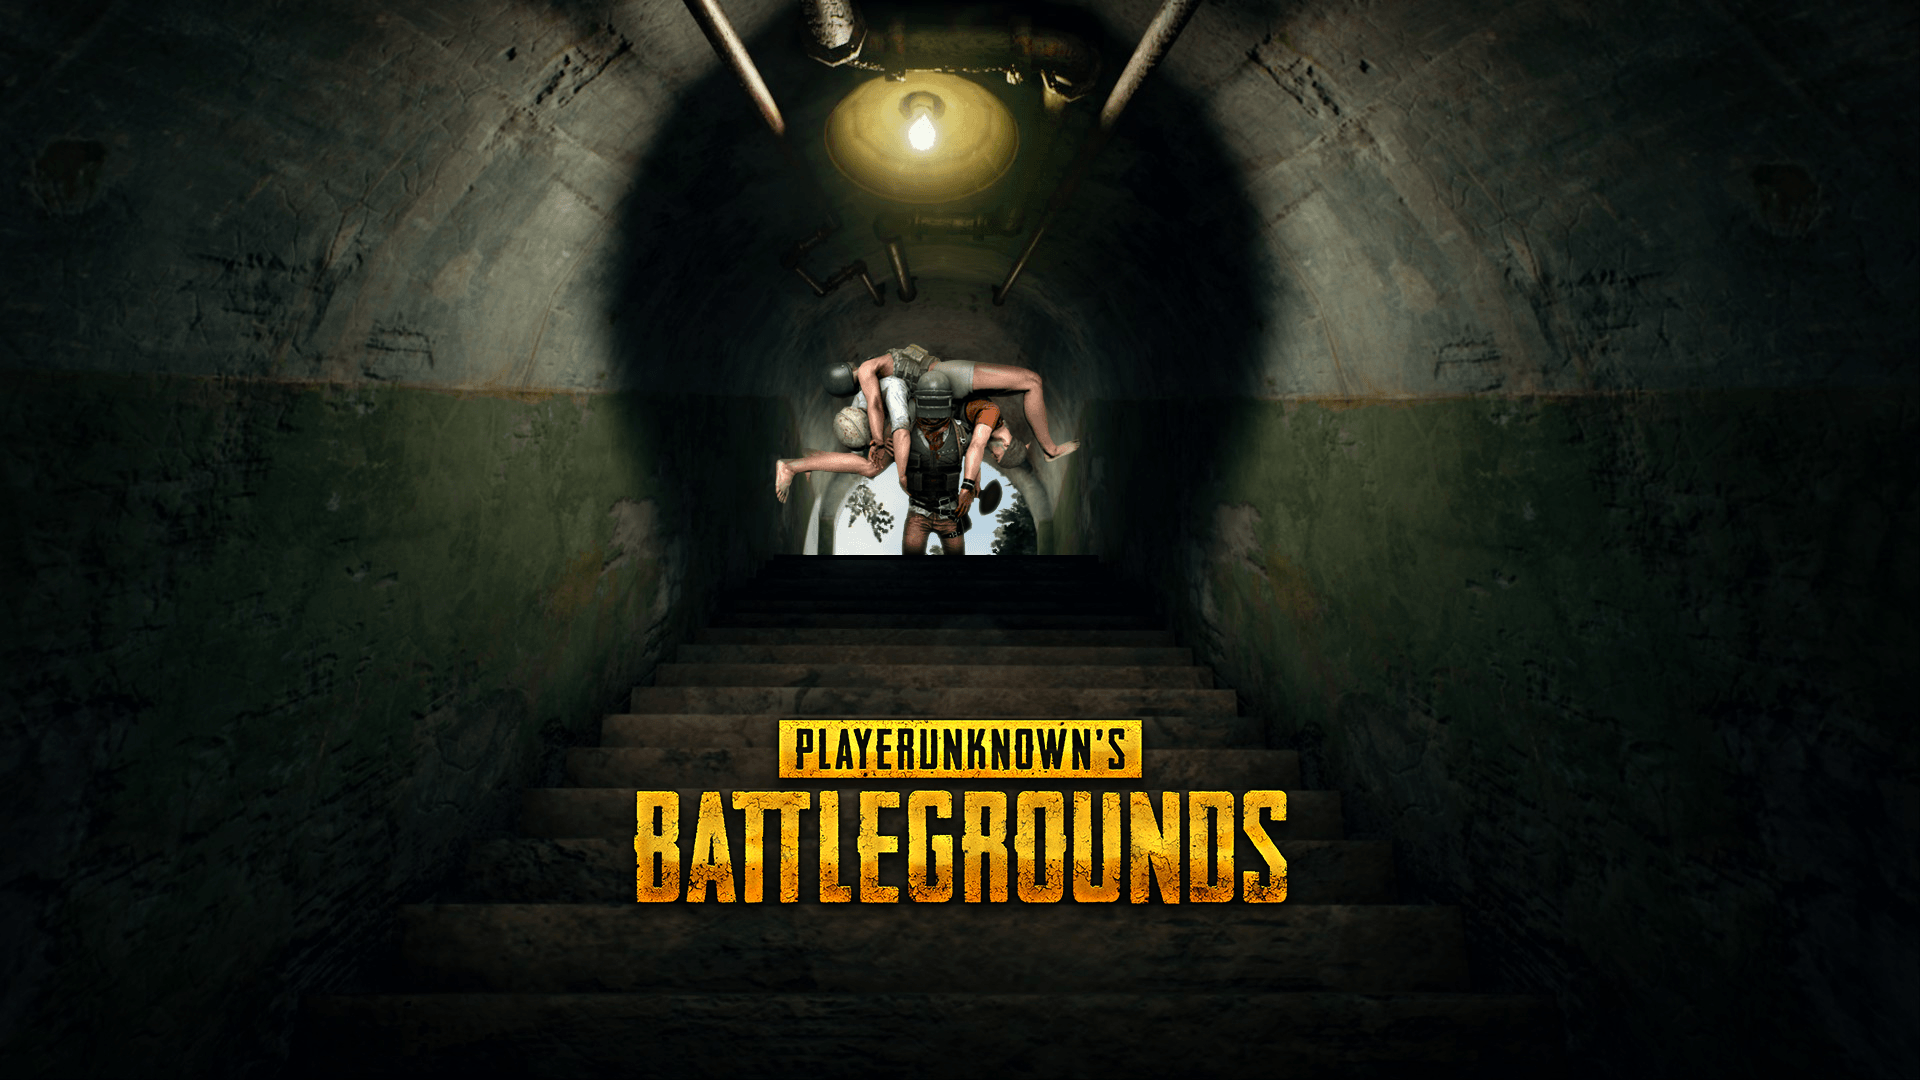 Pubg Wallpaper Black: PUBG Wallpapers